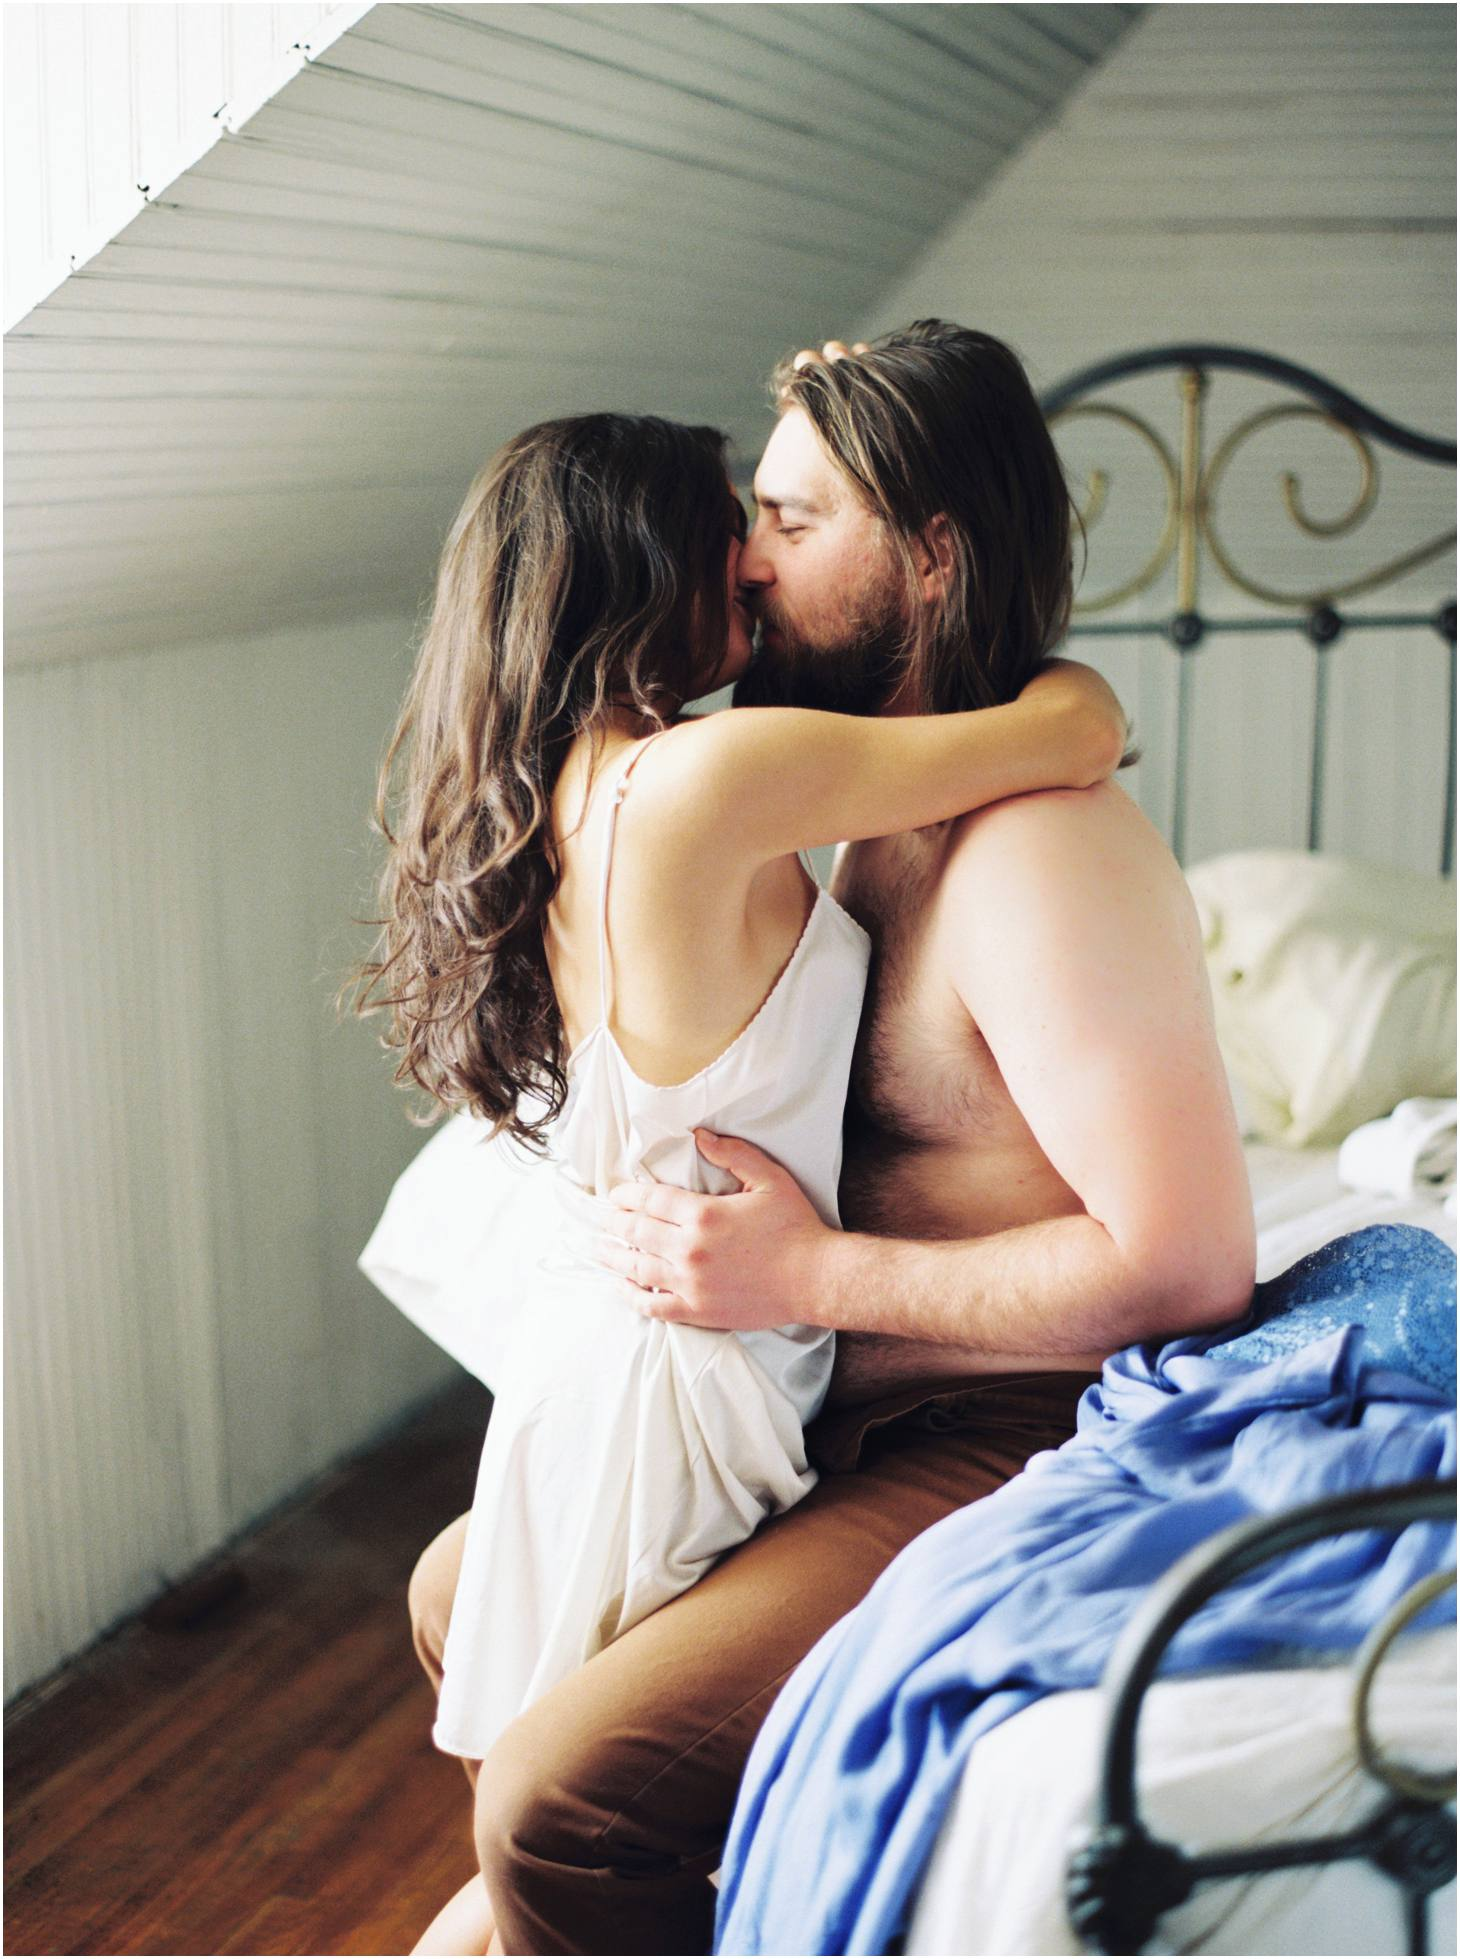 Kim Stockwell Photography Intimate Mornings Embrace Magazine_0011